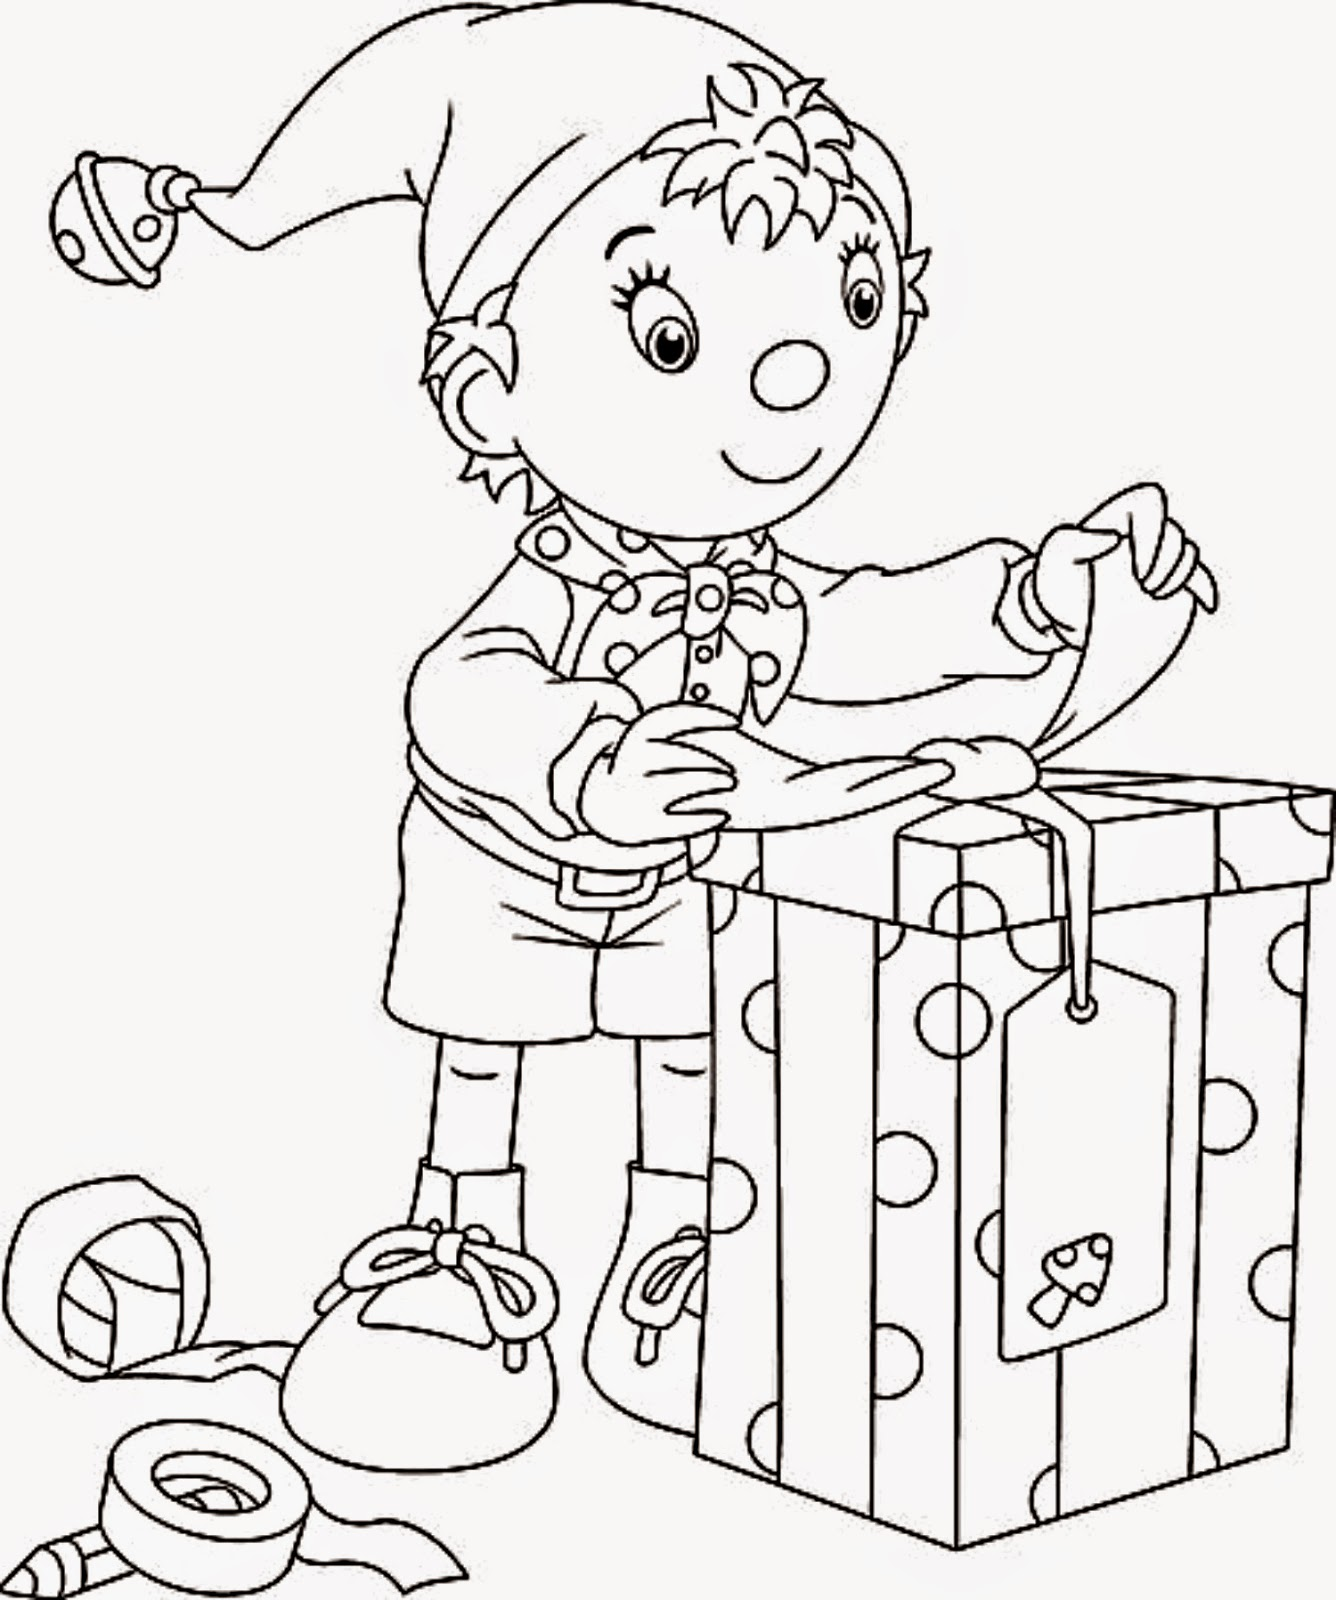 Santa S Helpers Coloring Pages With Christmas Elf Free And Printable